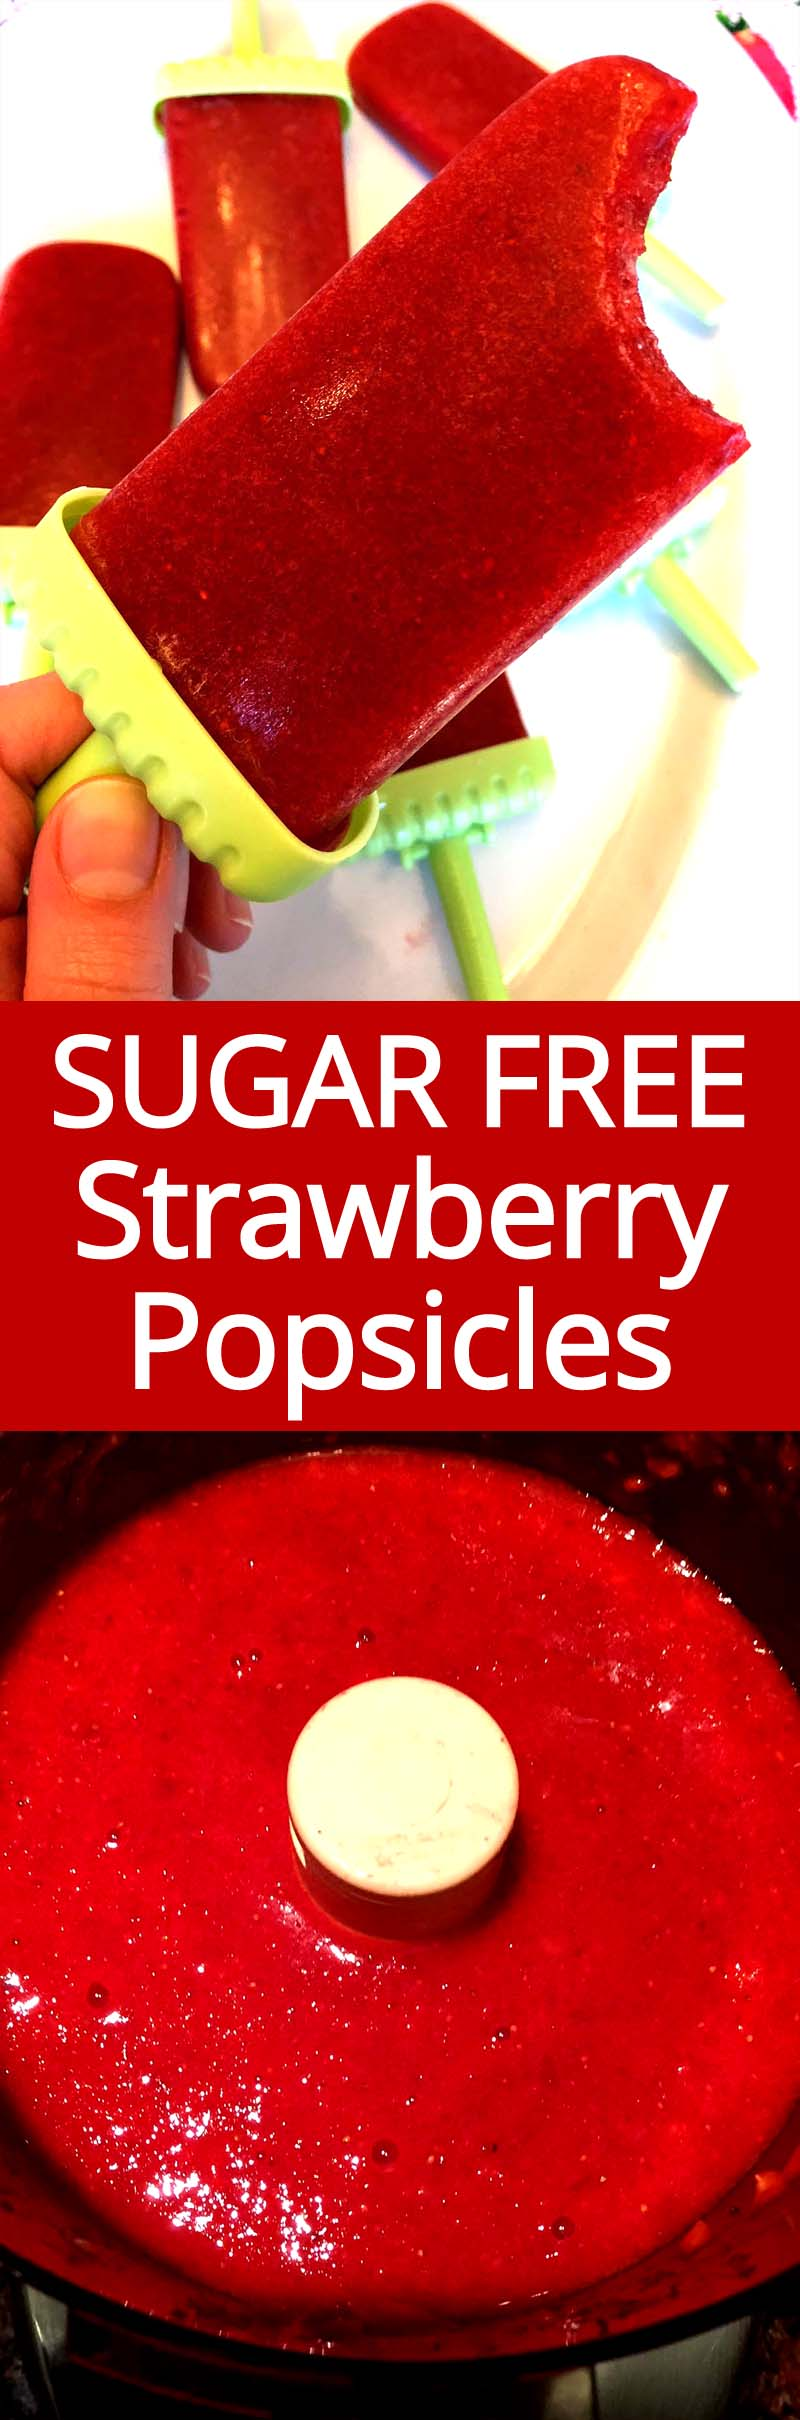 These homemade sugar-free strawberry popsicles are amazing! No added sugar!!!! So easy to make and super healthy! This is my favorite healthy treat, SO YUMMY!!!